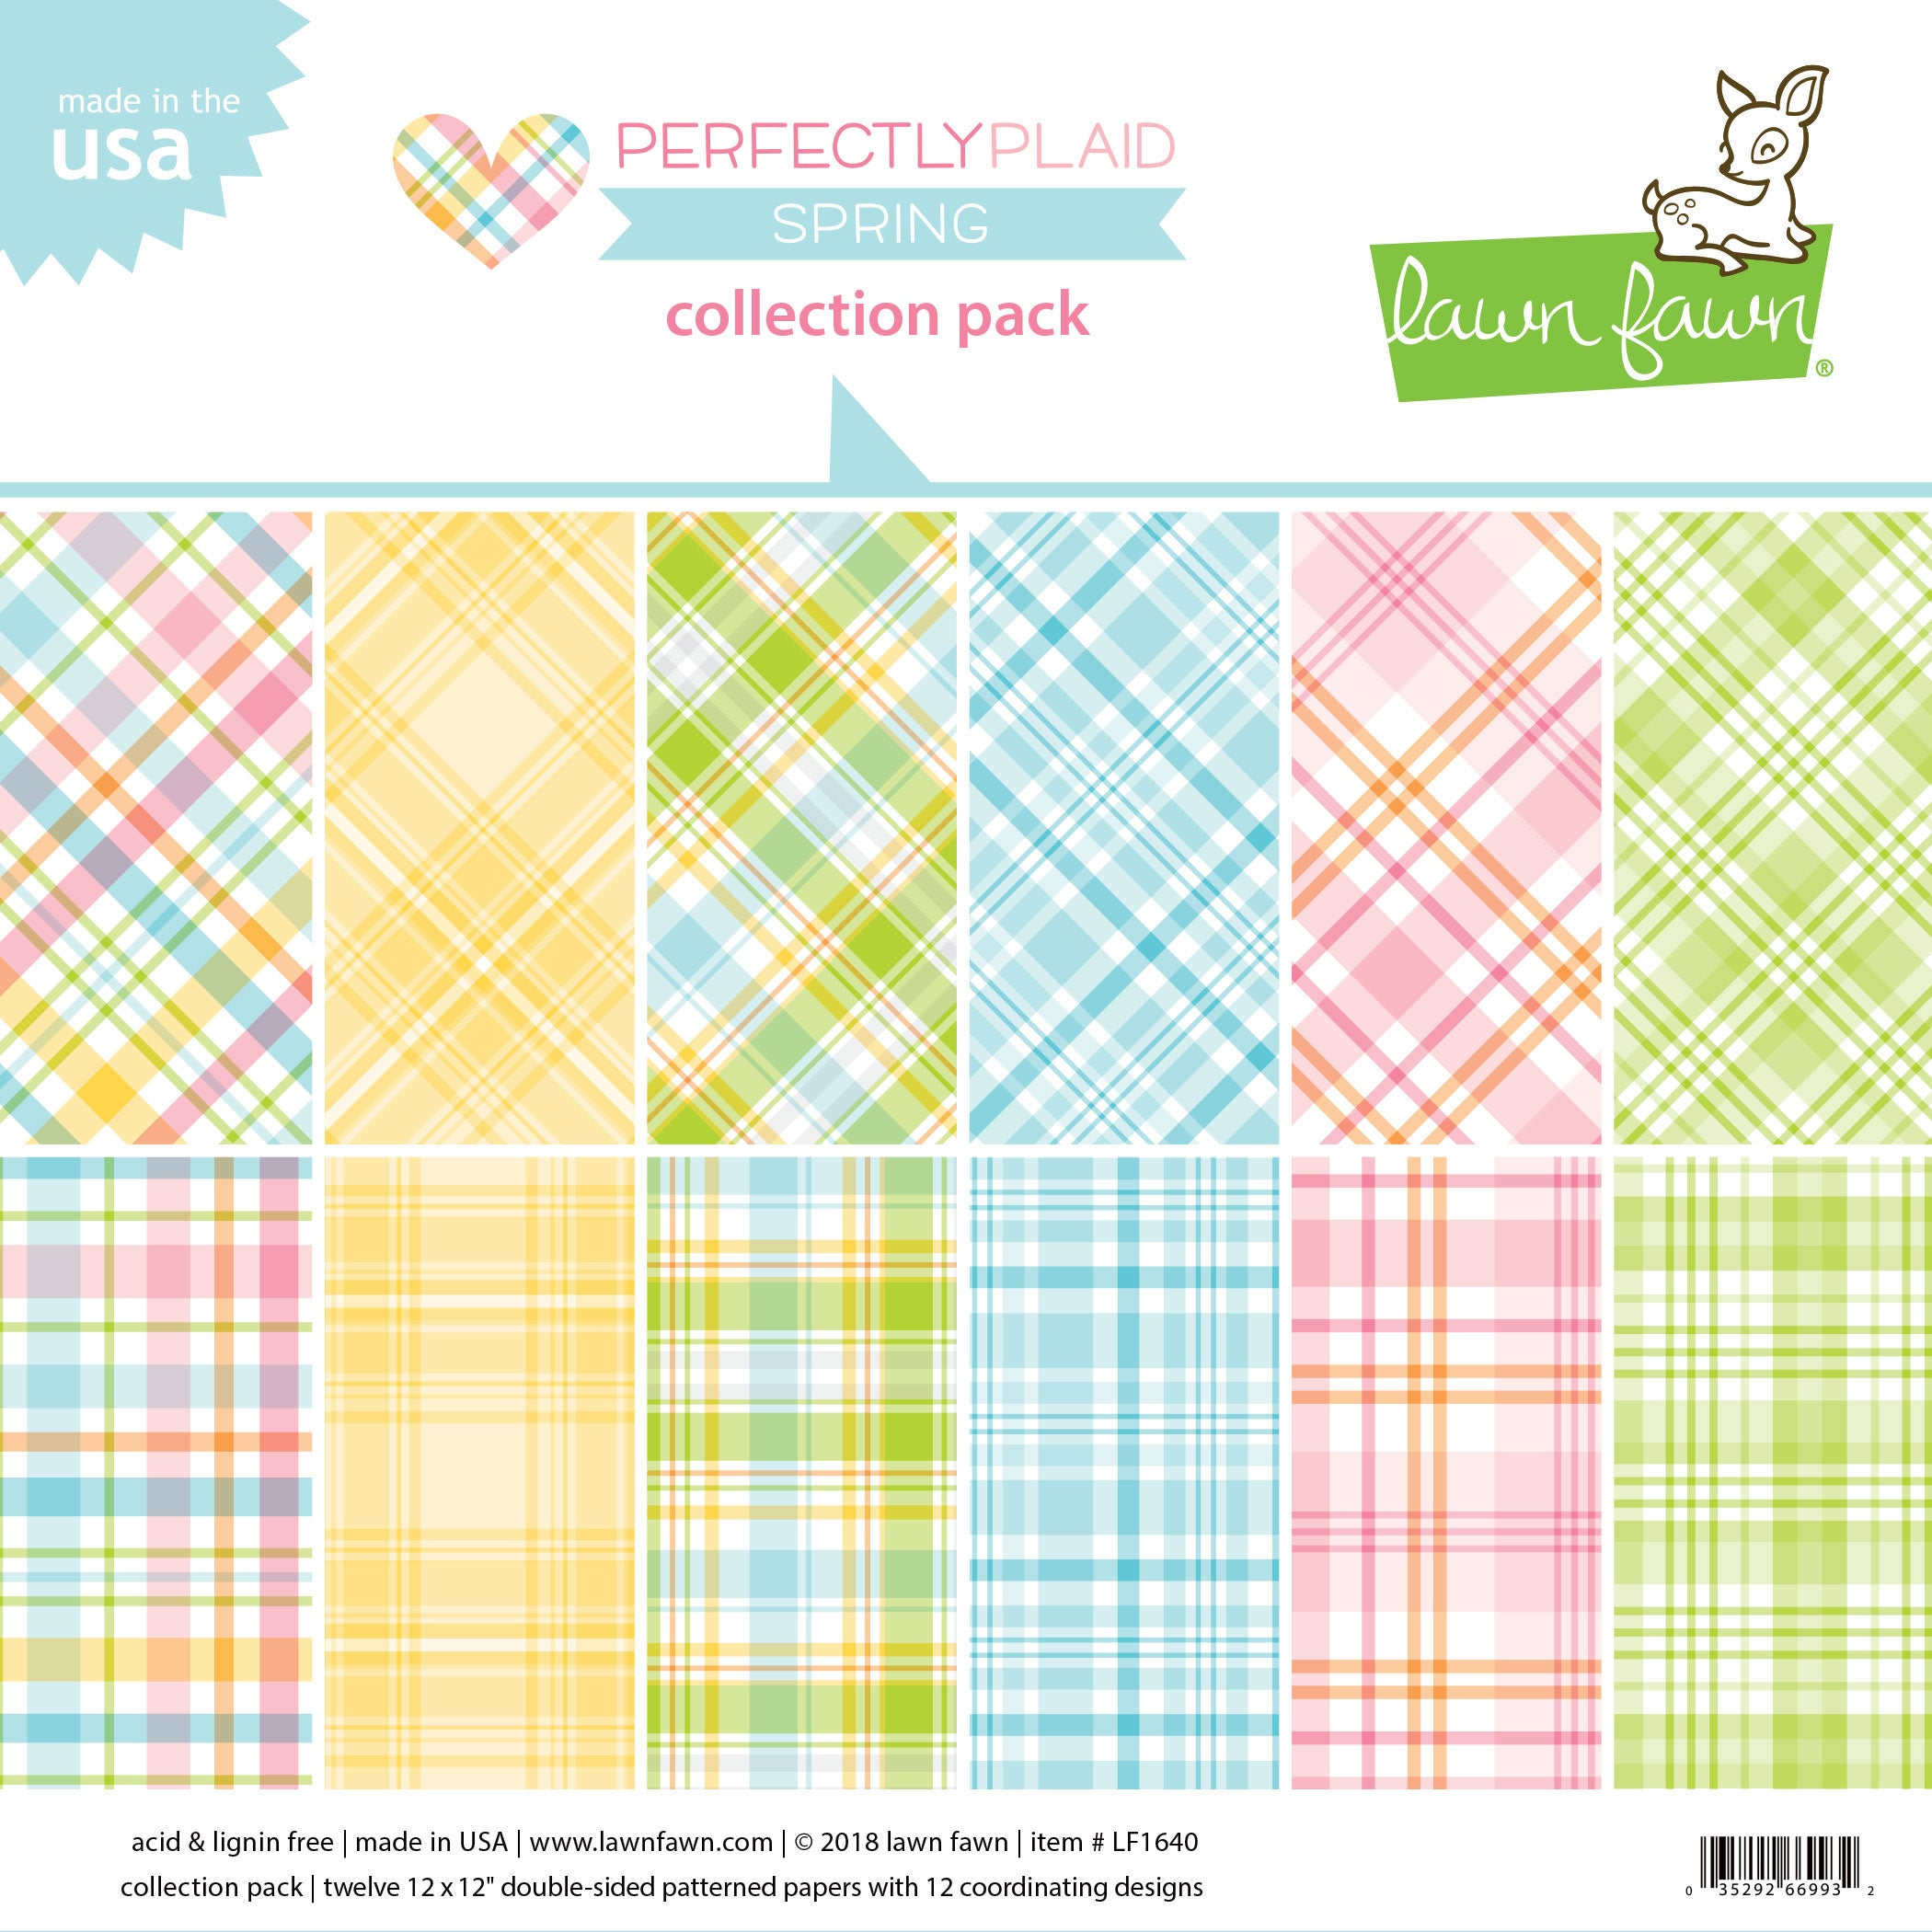 perfectly plaid spring collection pack